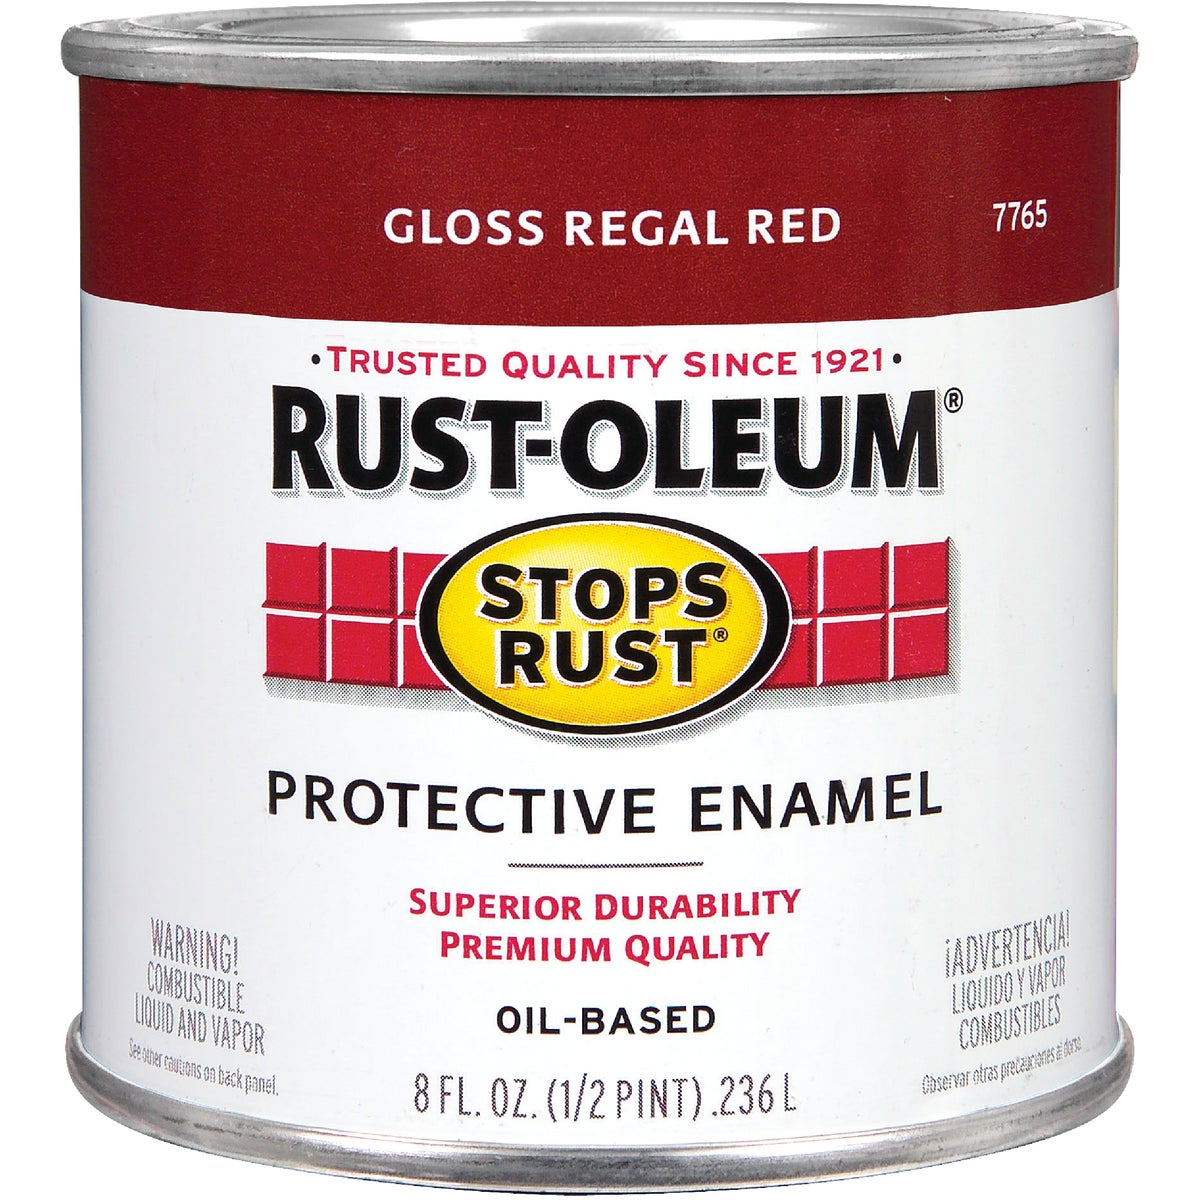 Rust Oleum REGAL RED ENAMEL 7765-730